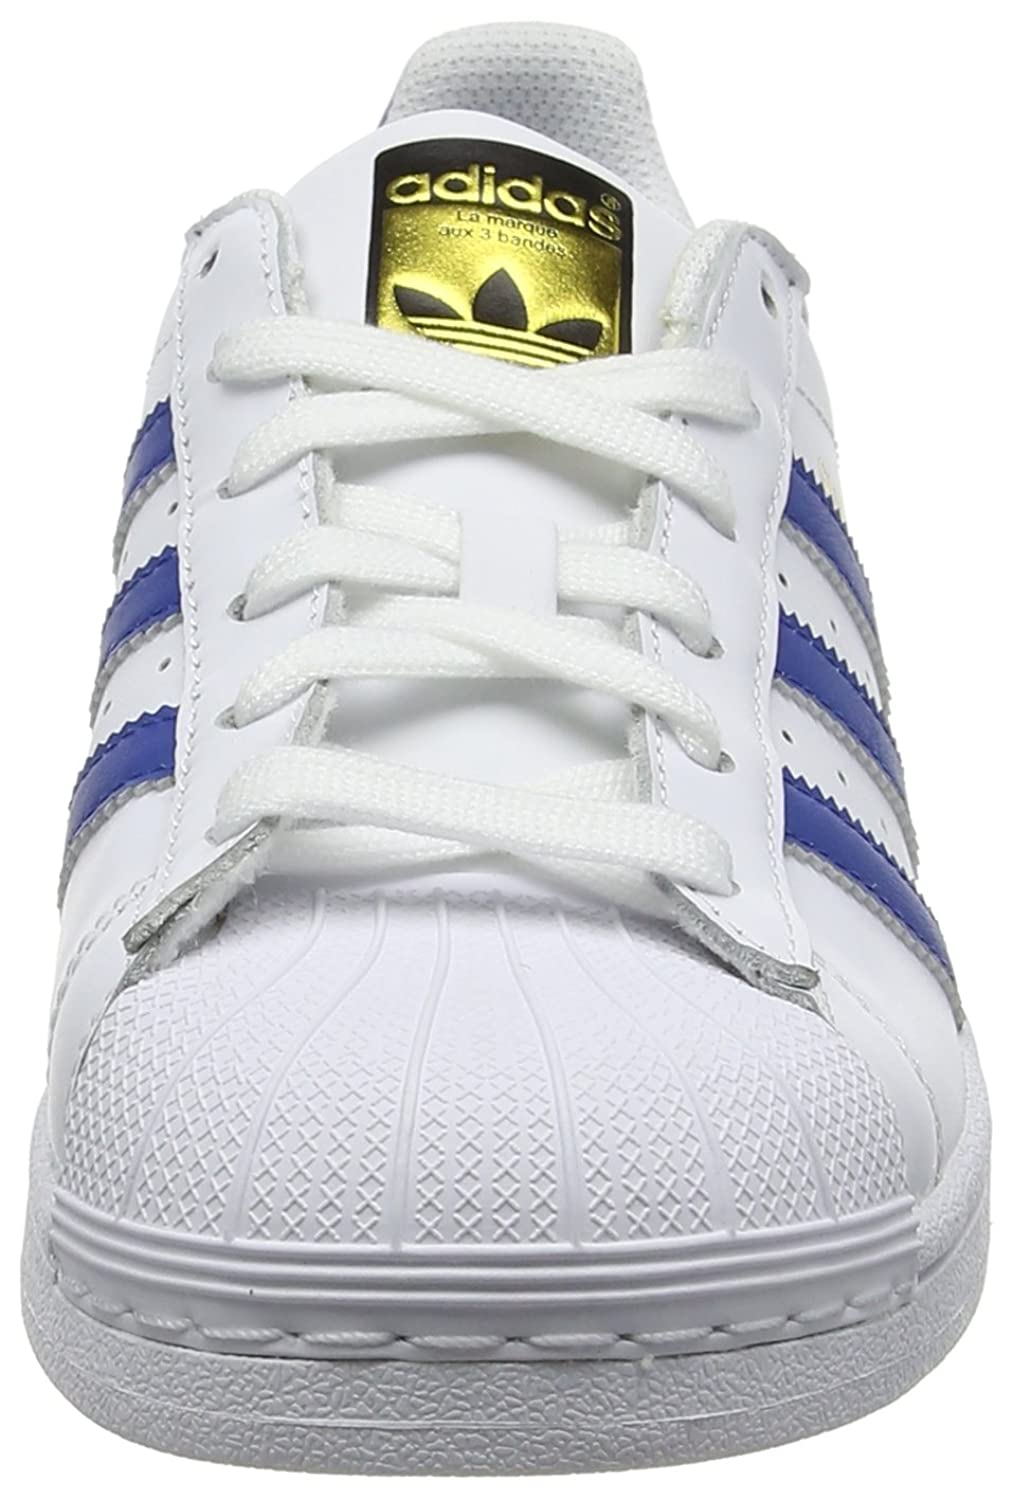 adidas superstar foundation unisex infantil